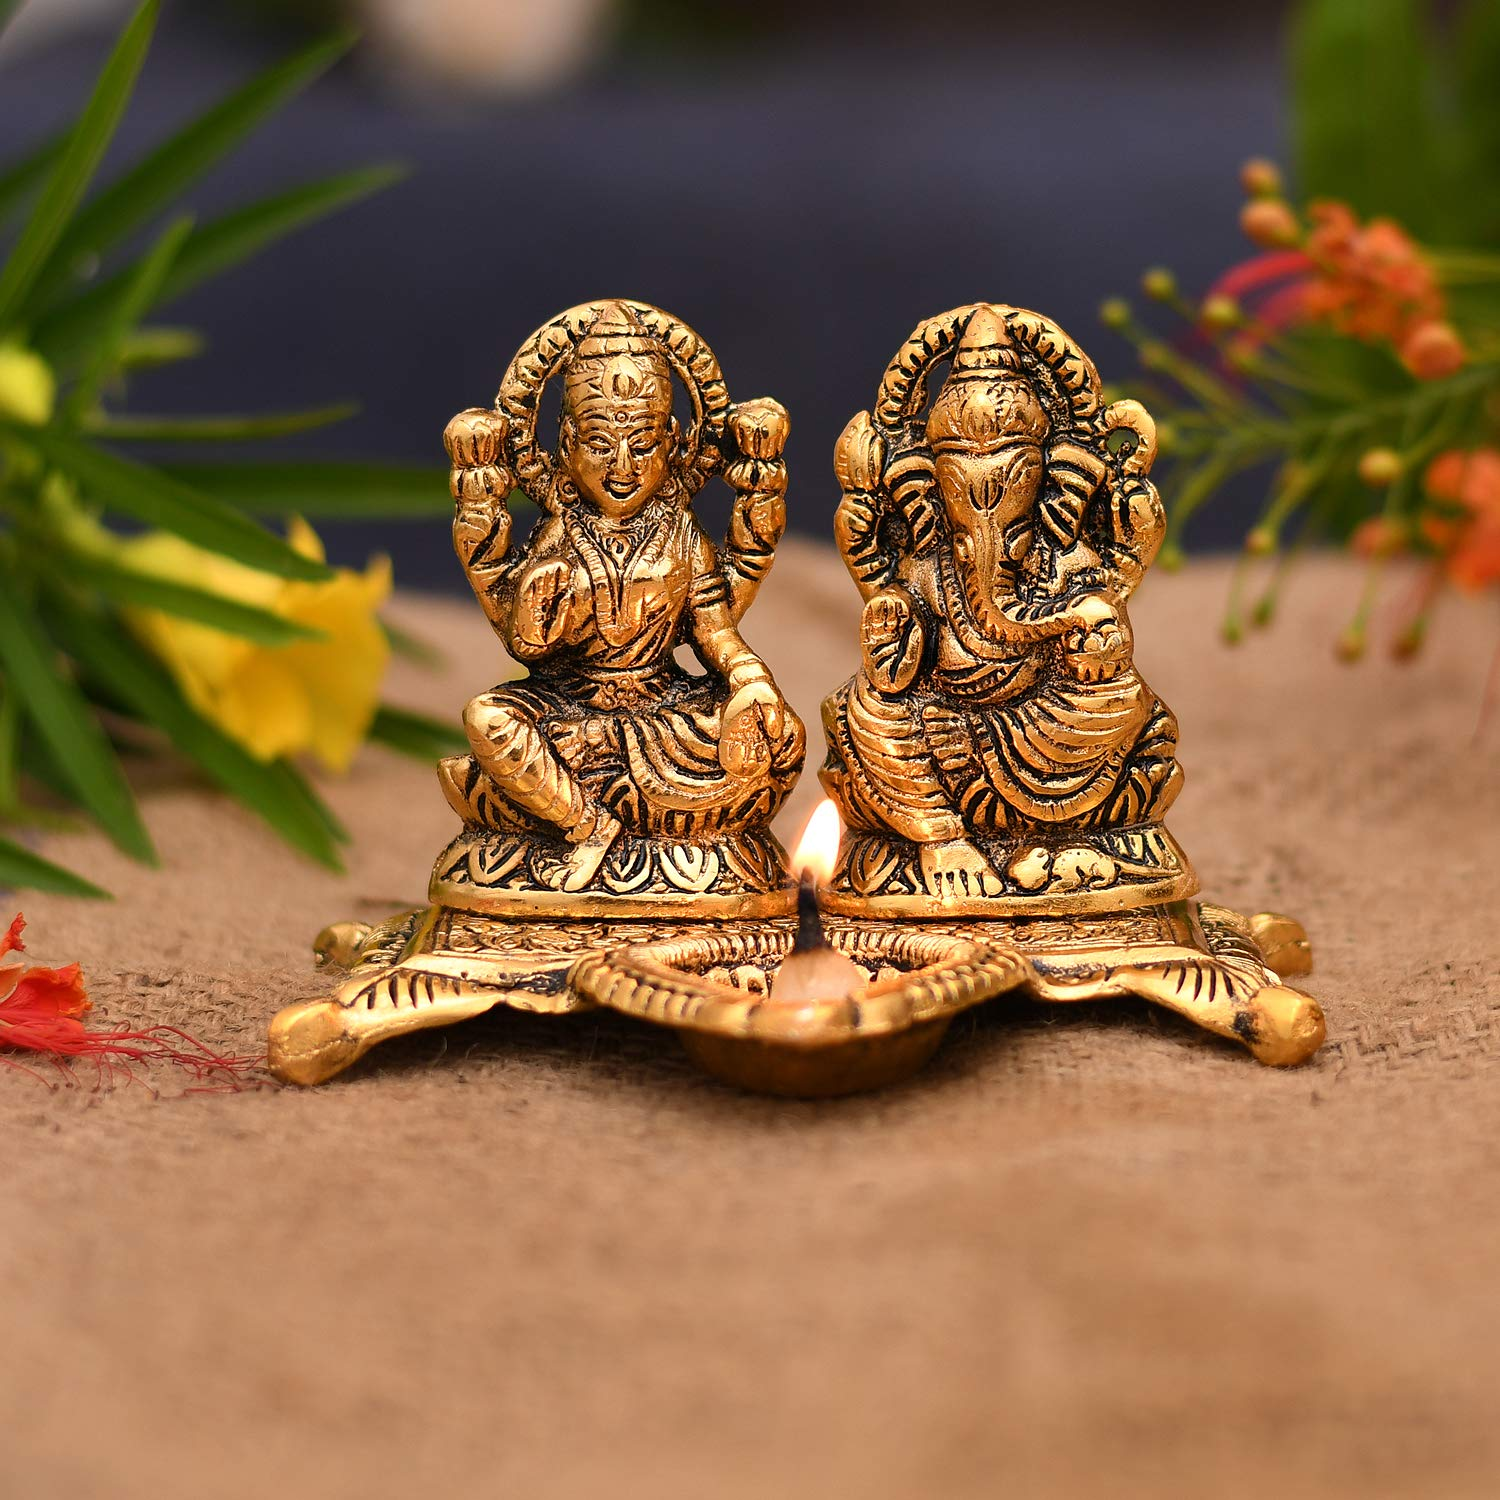 Buy Collectible India Laxmi Ganesh Murti Idol Diya Ouja Deepak Metal Lakshmi Ganesh Statue Diwali Home Decoration Items Lakshmi Ganesh For Diwali Showpiece Oil Lamp Online At Low Prices